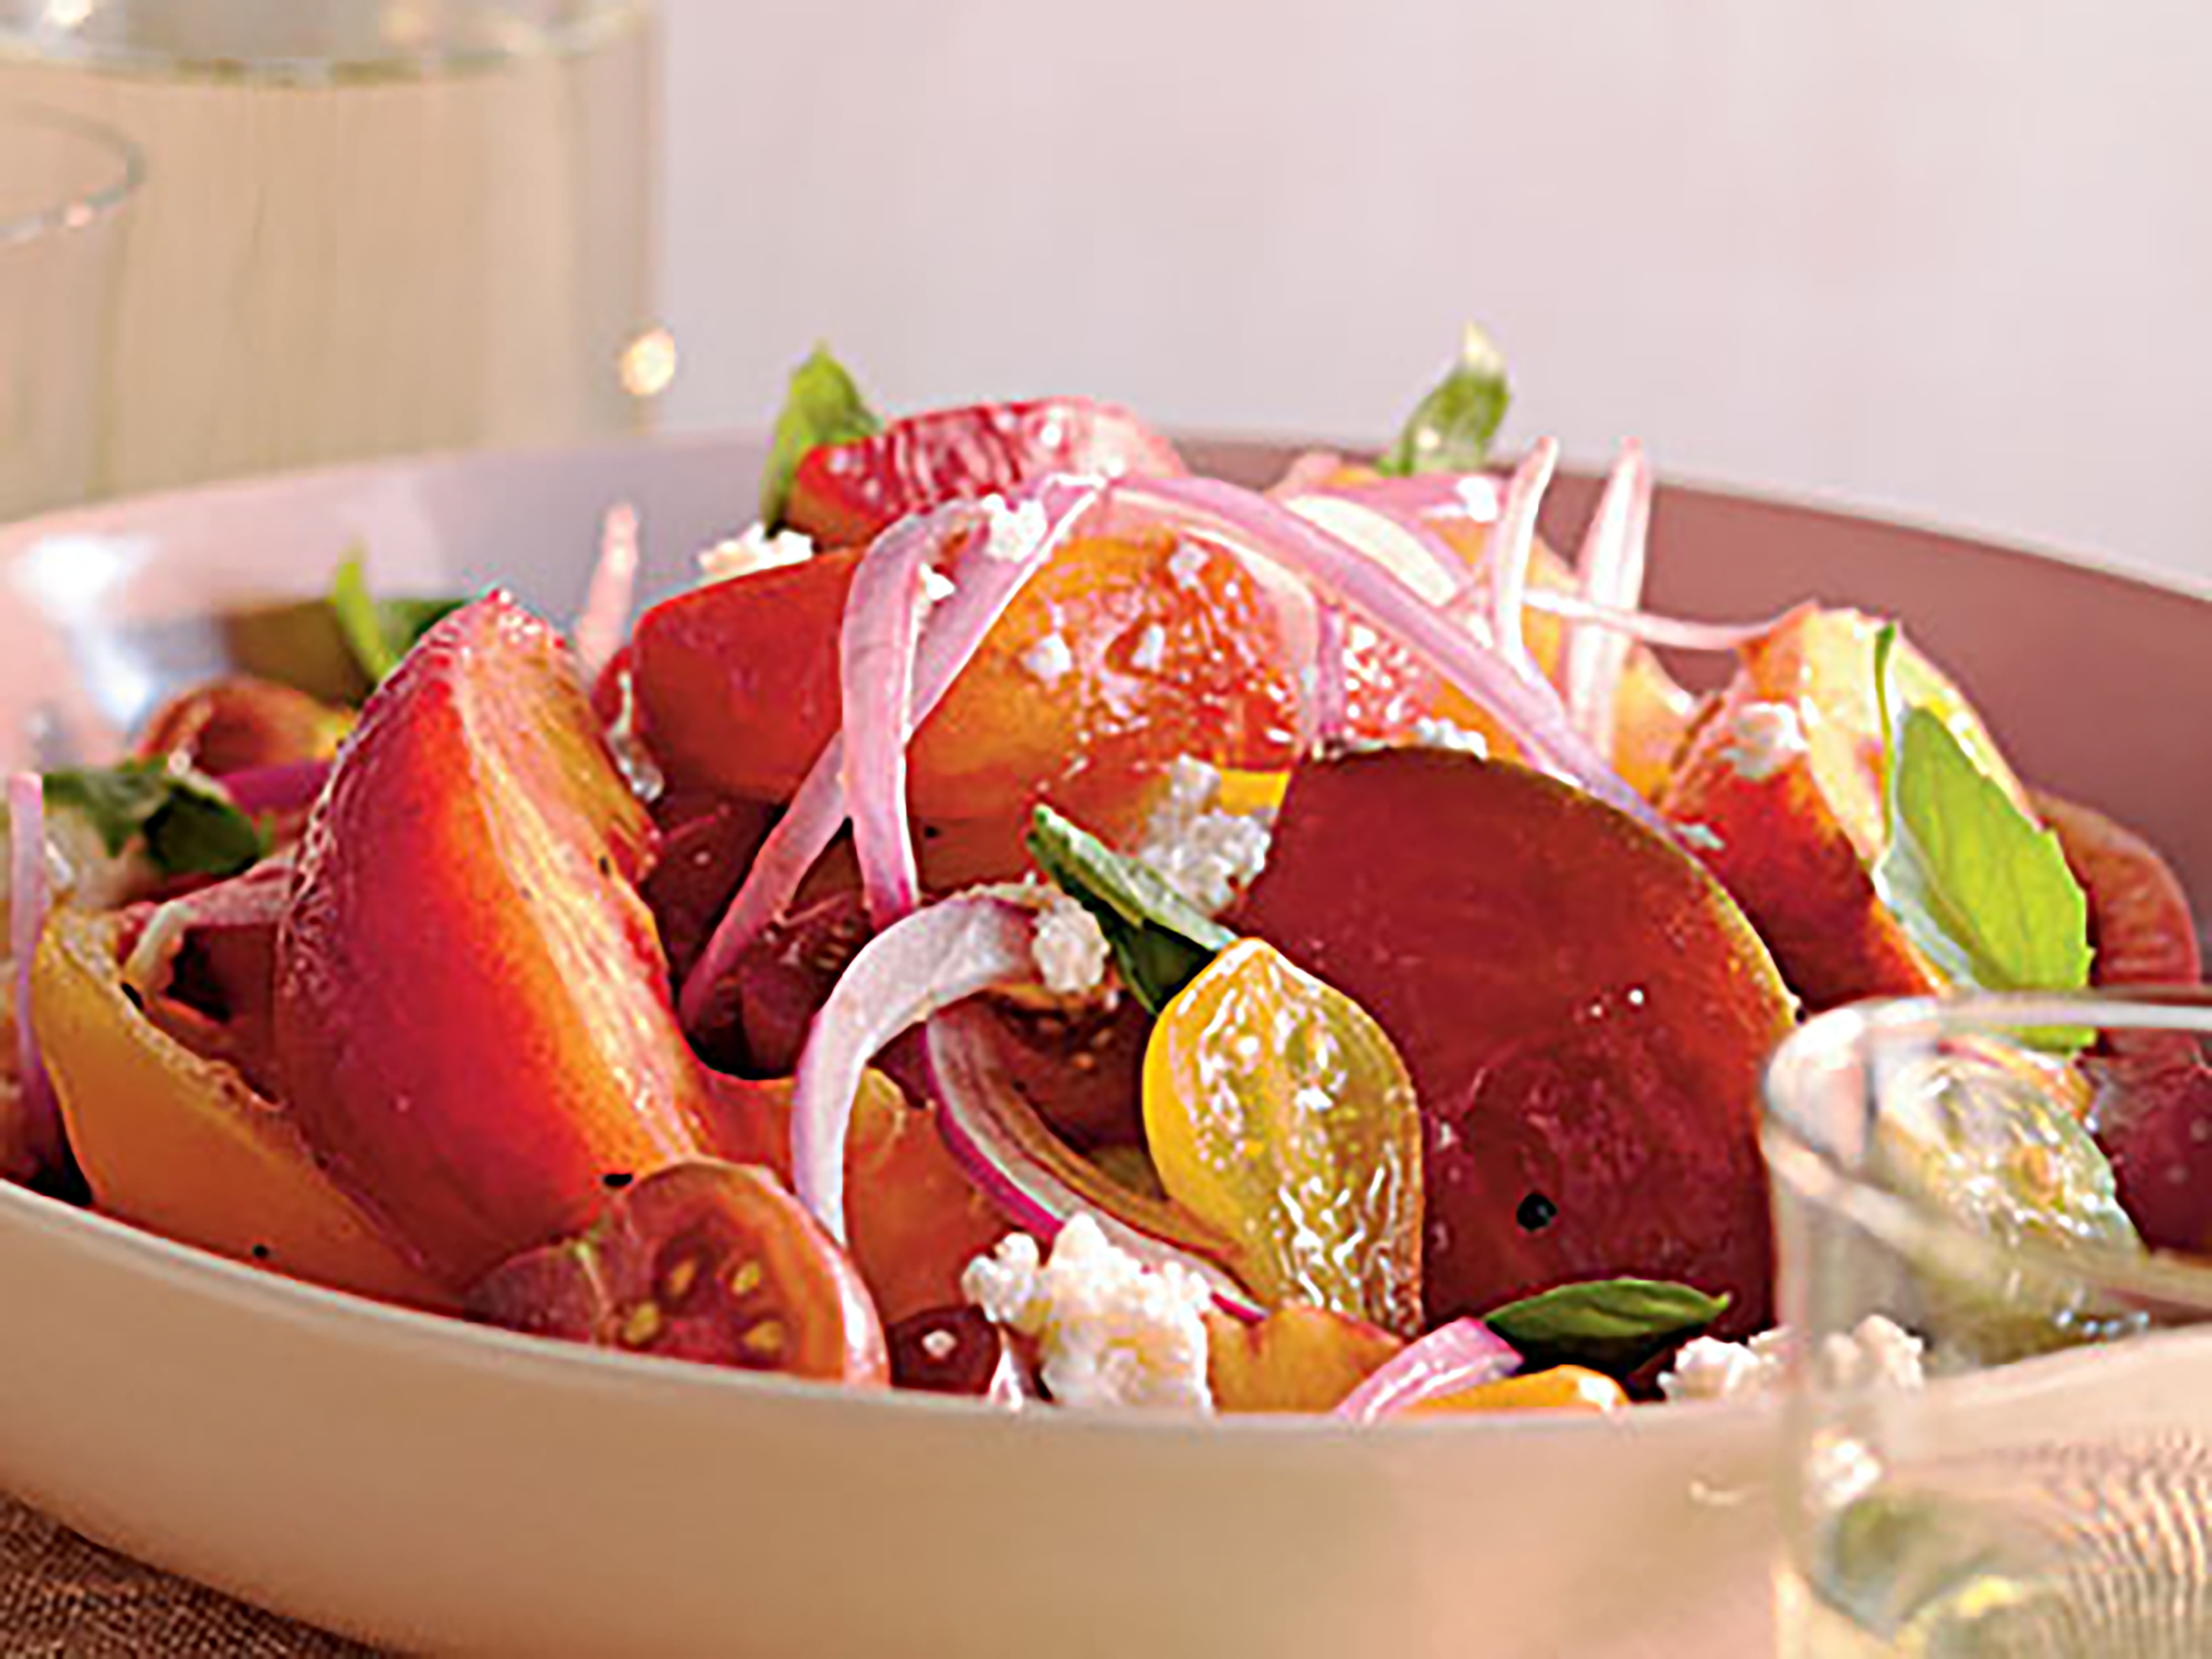 ck - Summer Peach and Tomato Salad (large)